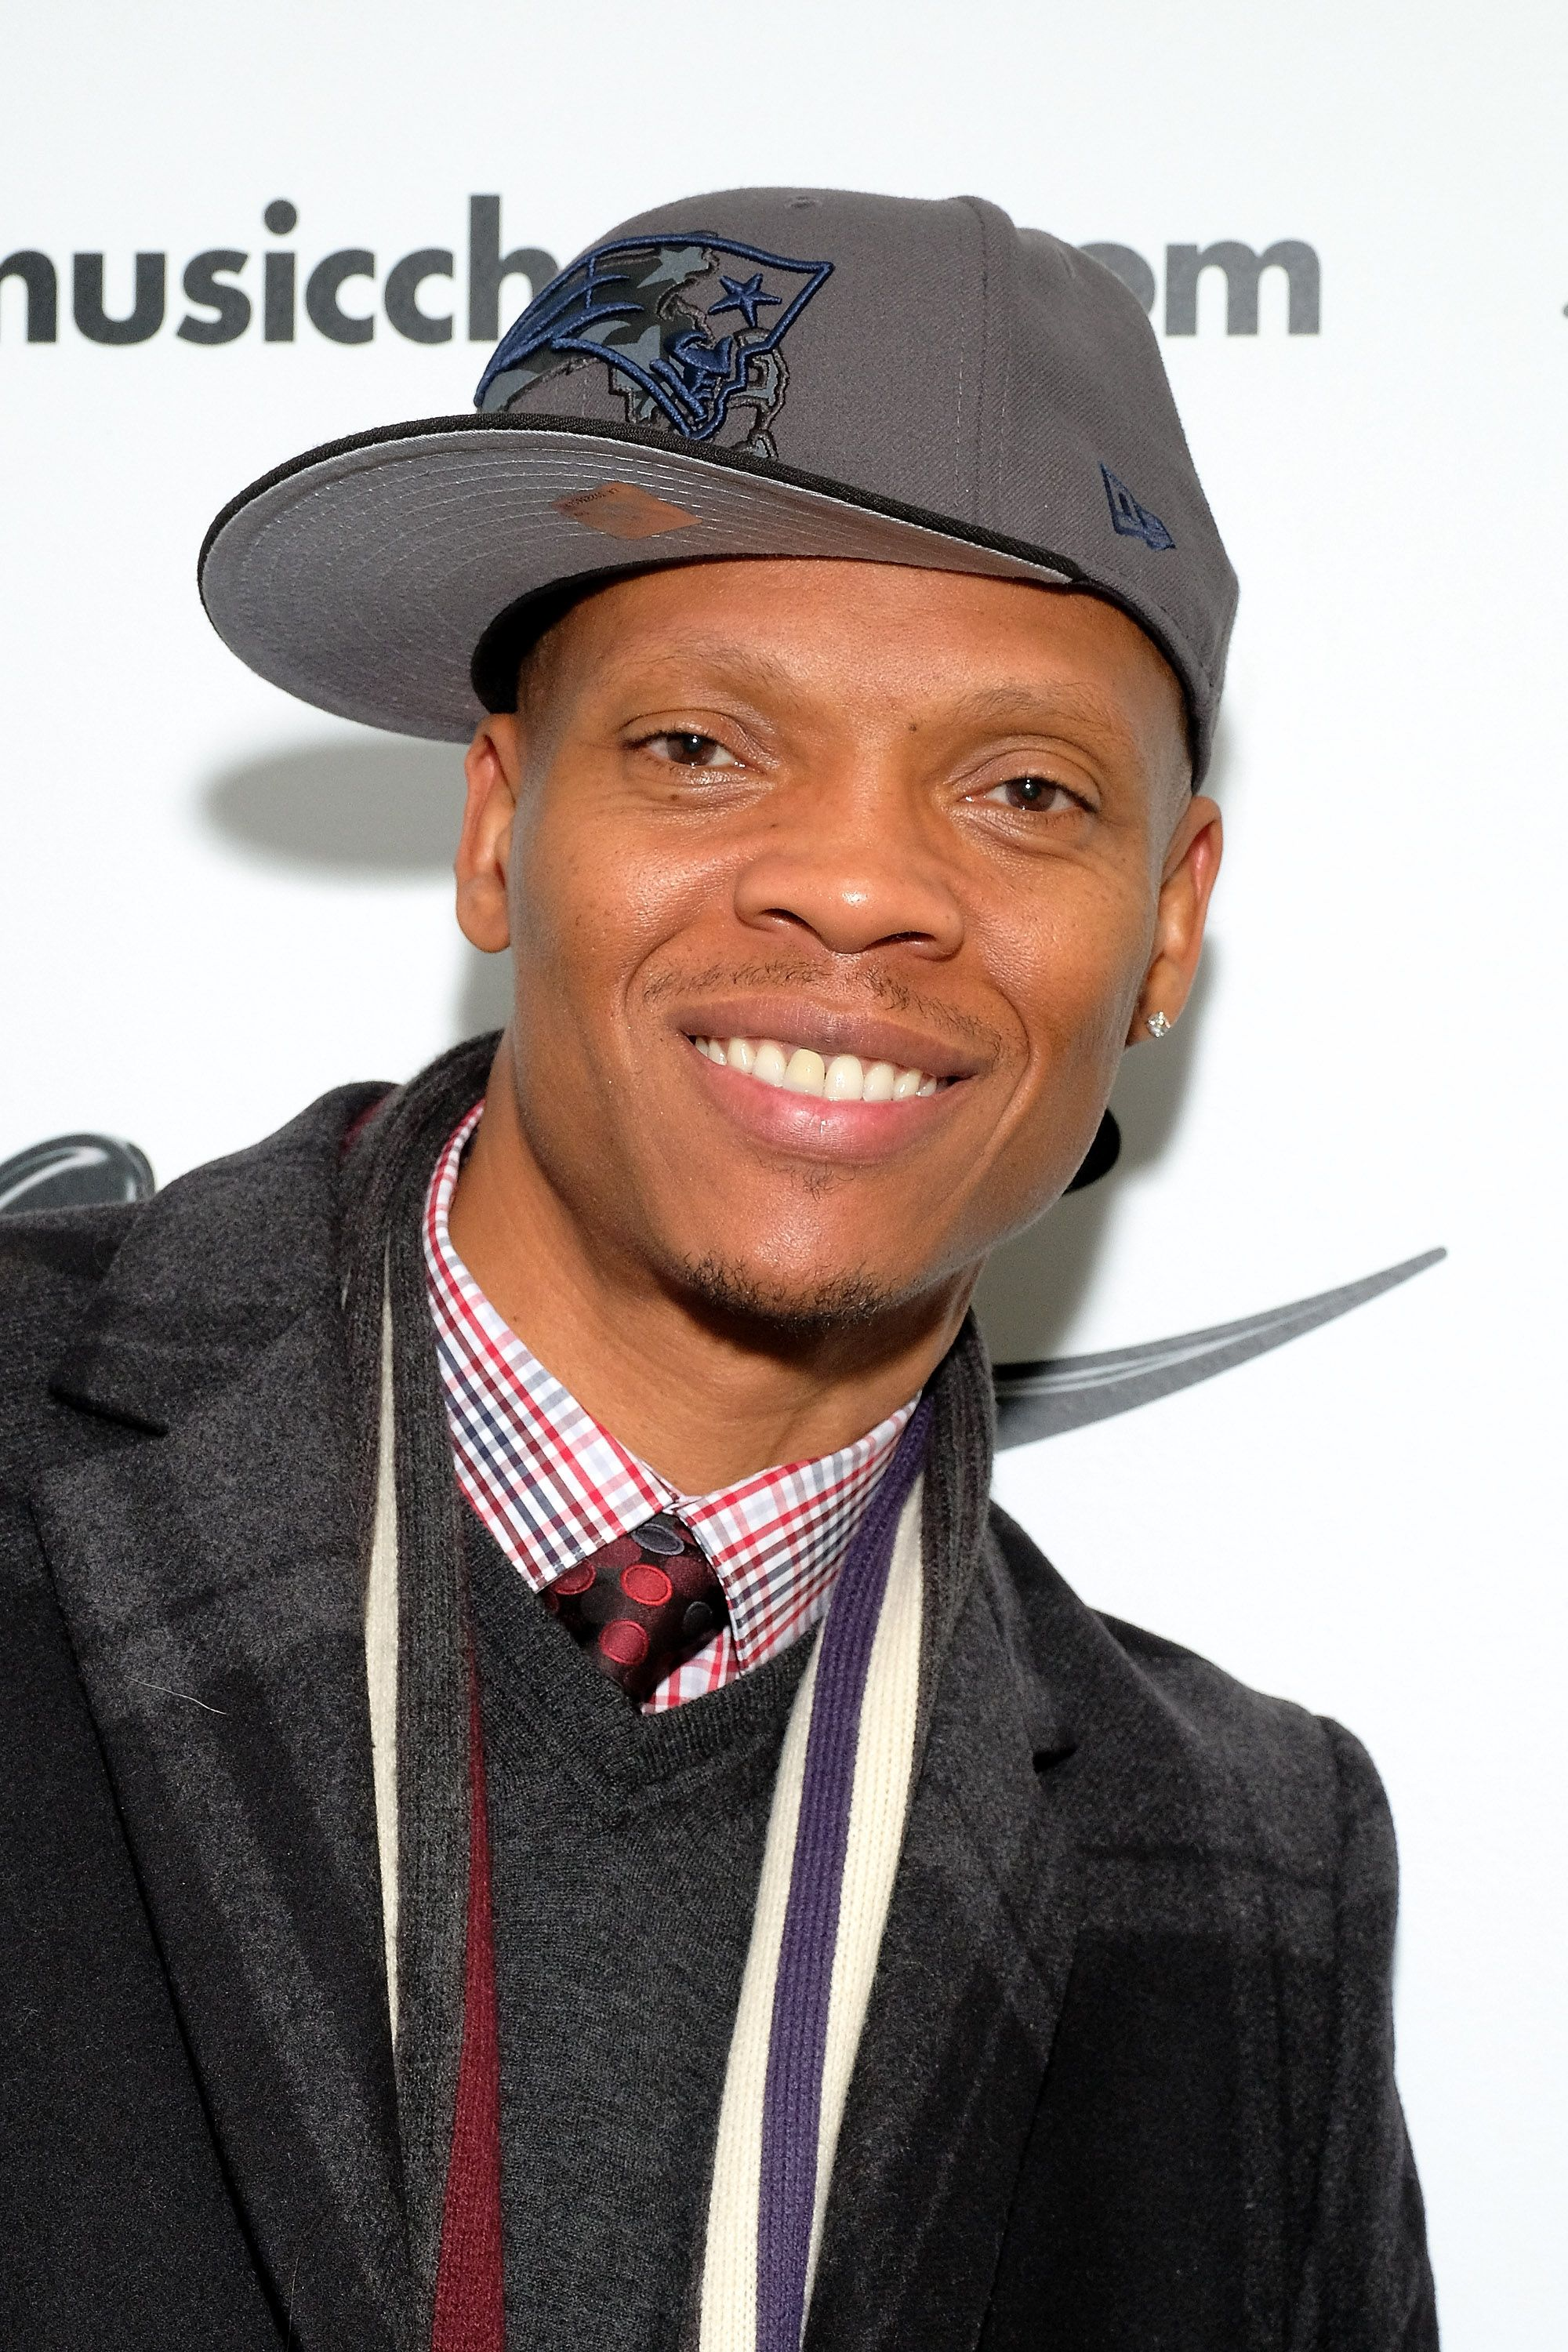 Ronnie DeVoe at Music Choice on January 19, 2017 in New York City. | Source: Getty Images